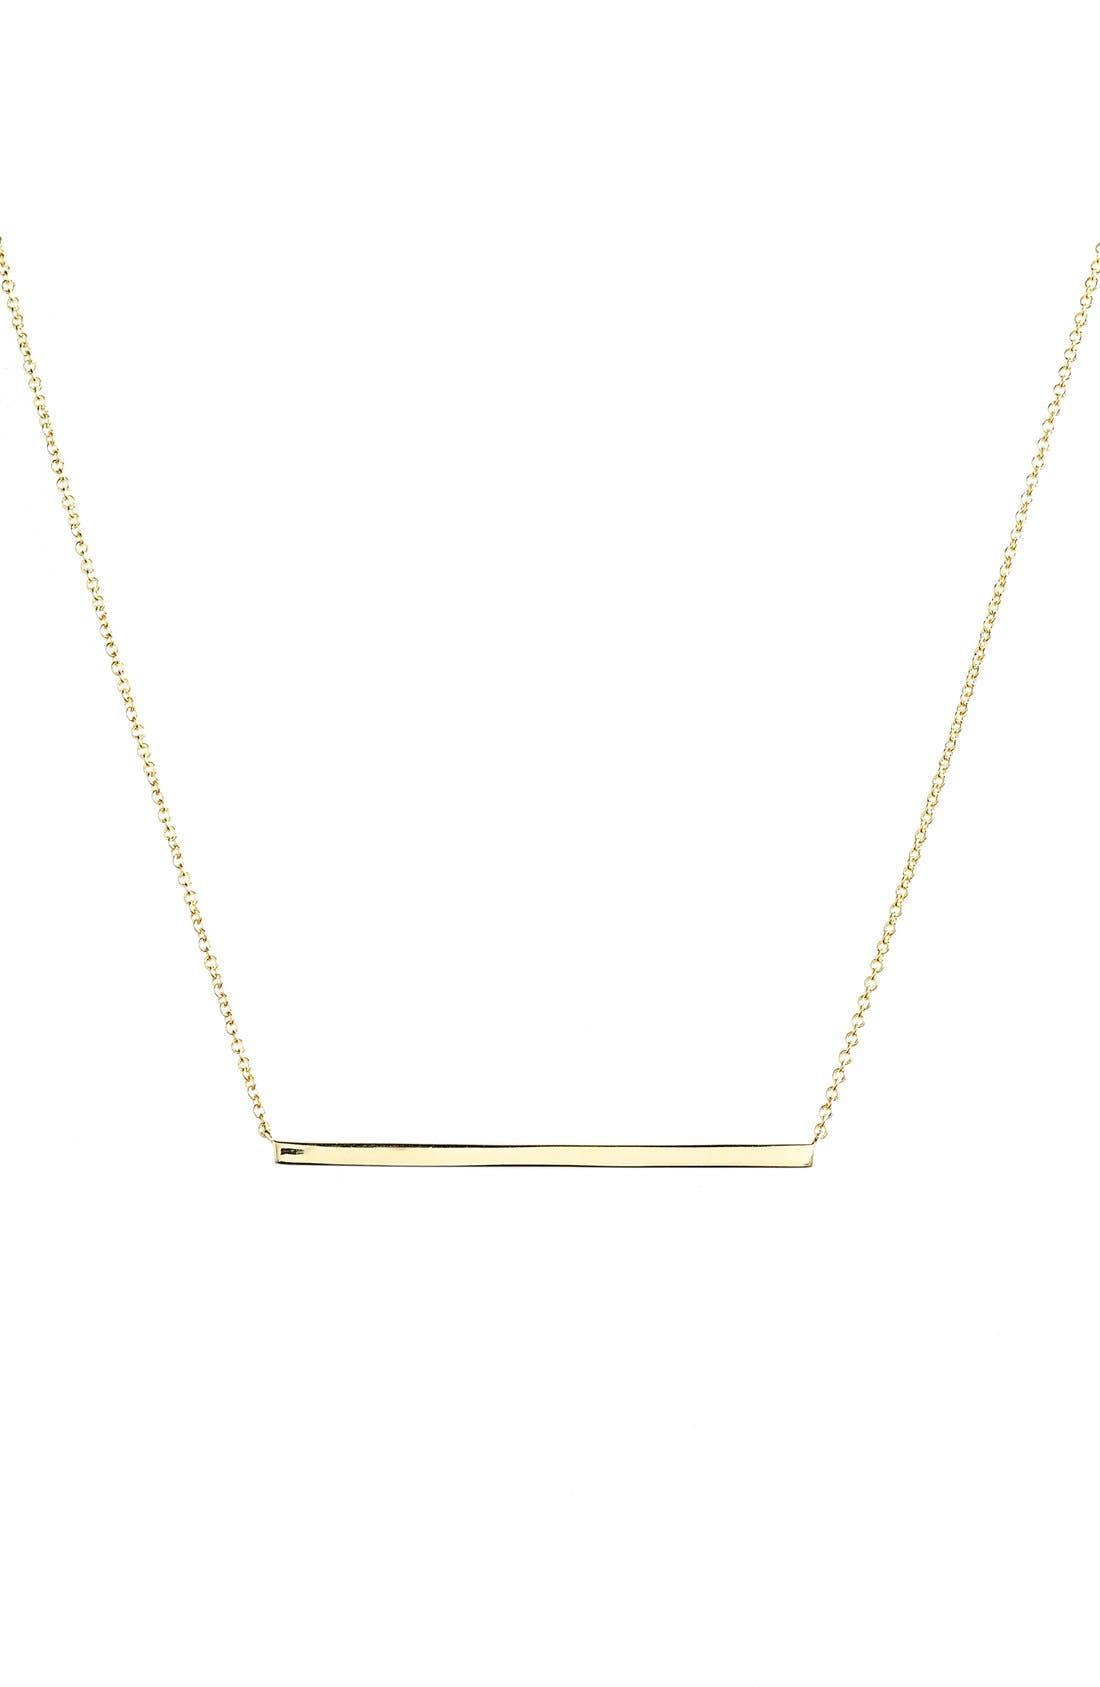 14k Gold Bar Pendant Necklace,                         Main,                         color, Yellow Gold